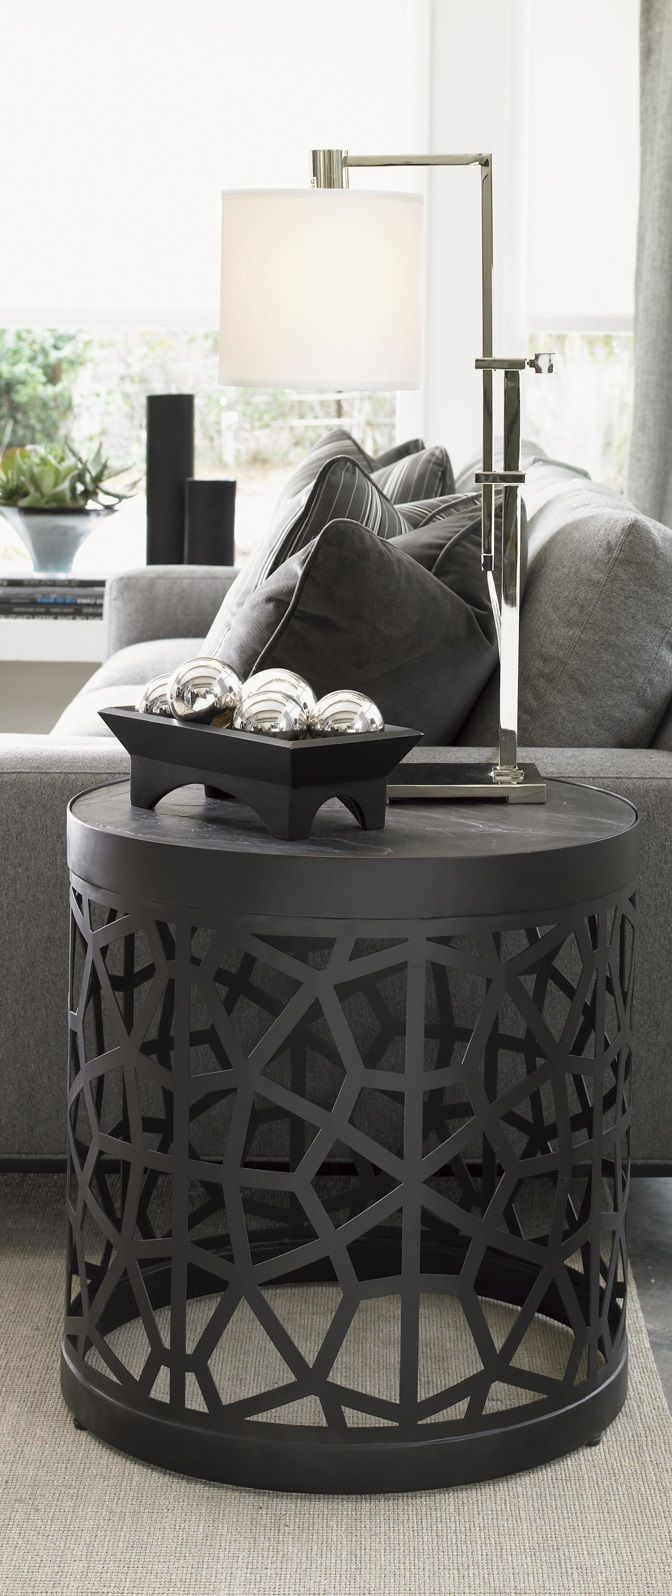 best  living room side tables ideas only on pinterest  - side tables accent tables end tables interiordesign casegoodsideascontemporary